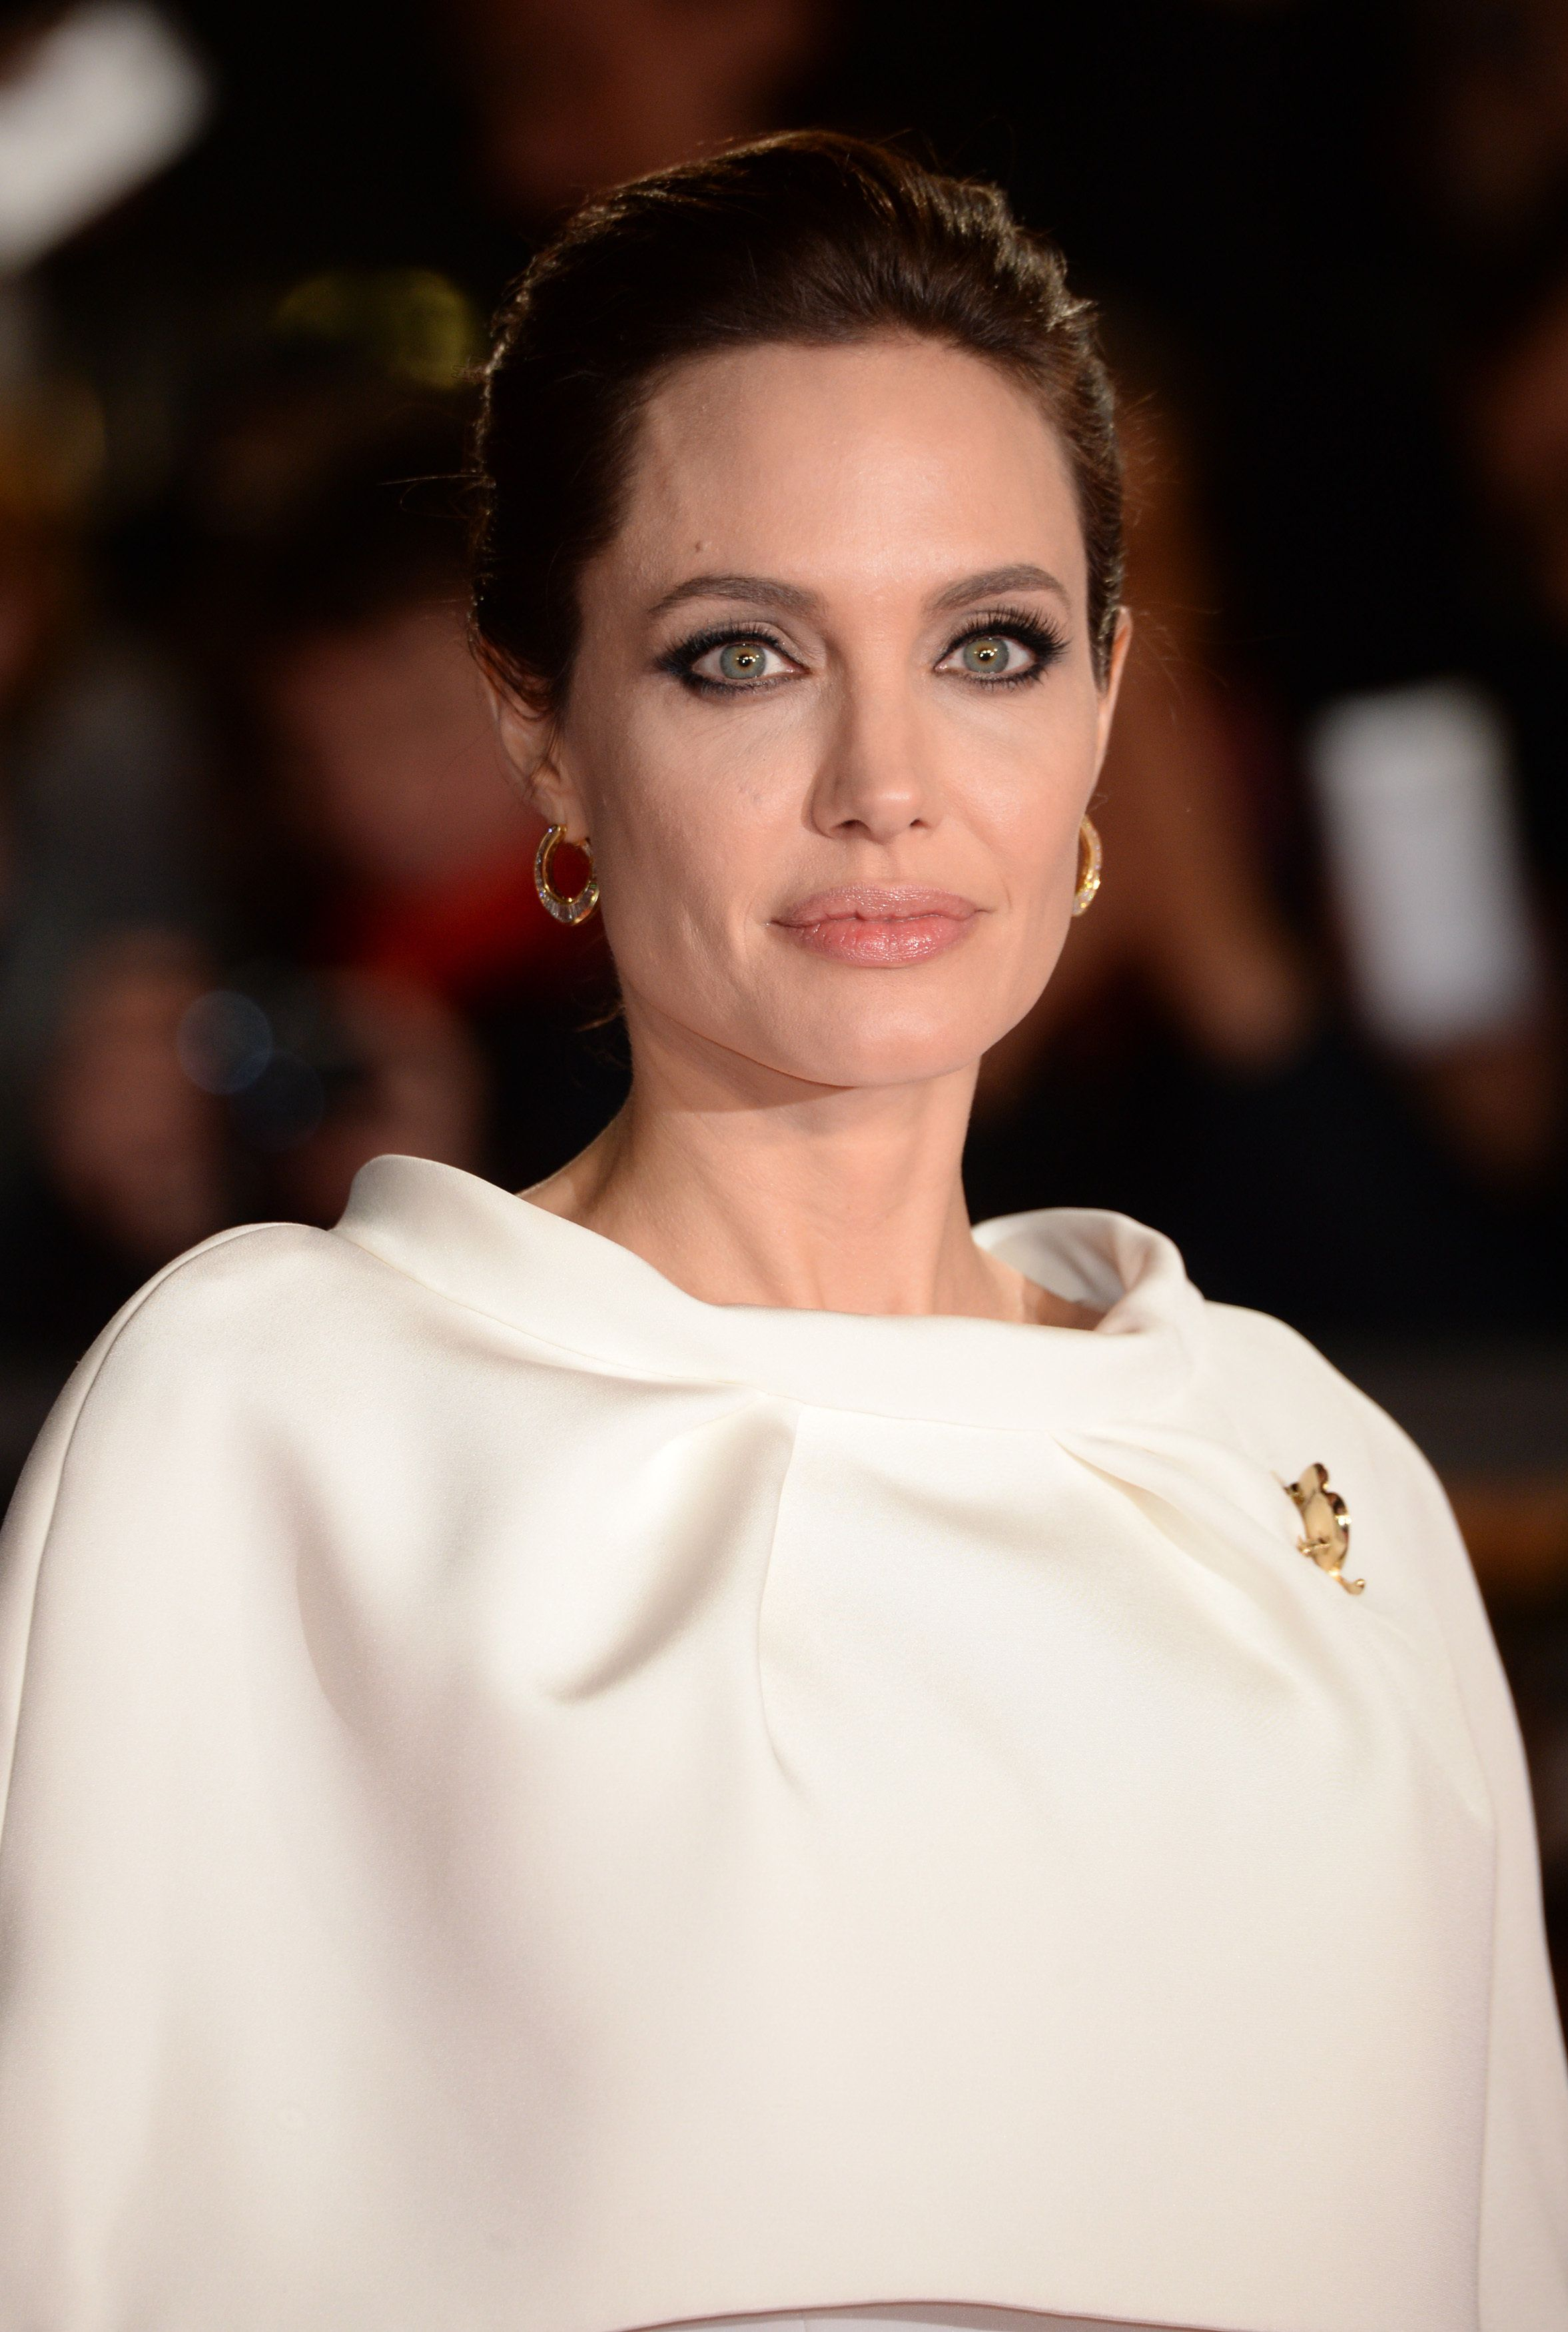 Angelina Jolie Talks Brad Pitt Divorce In Most Candid Interview Since